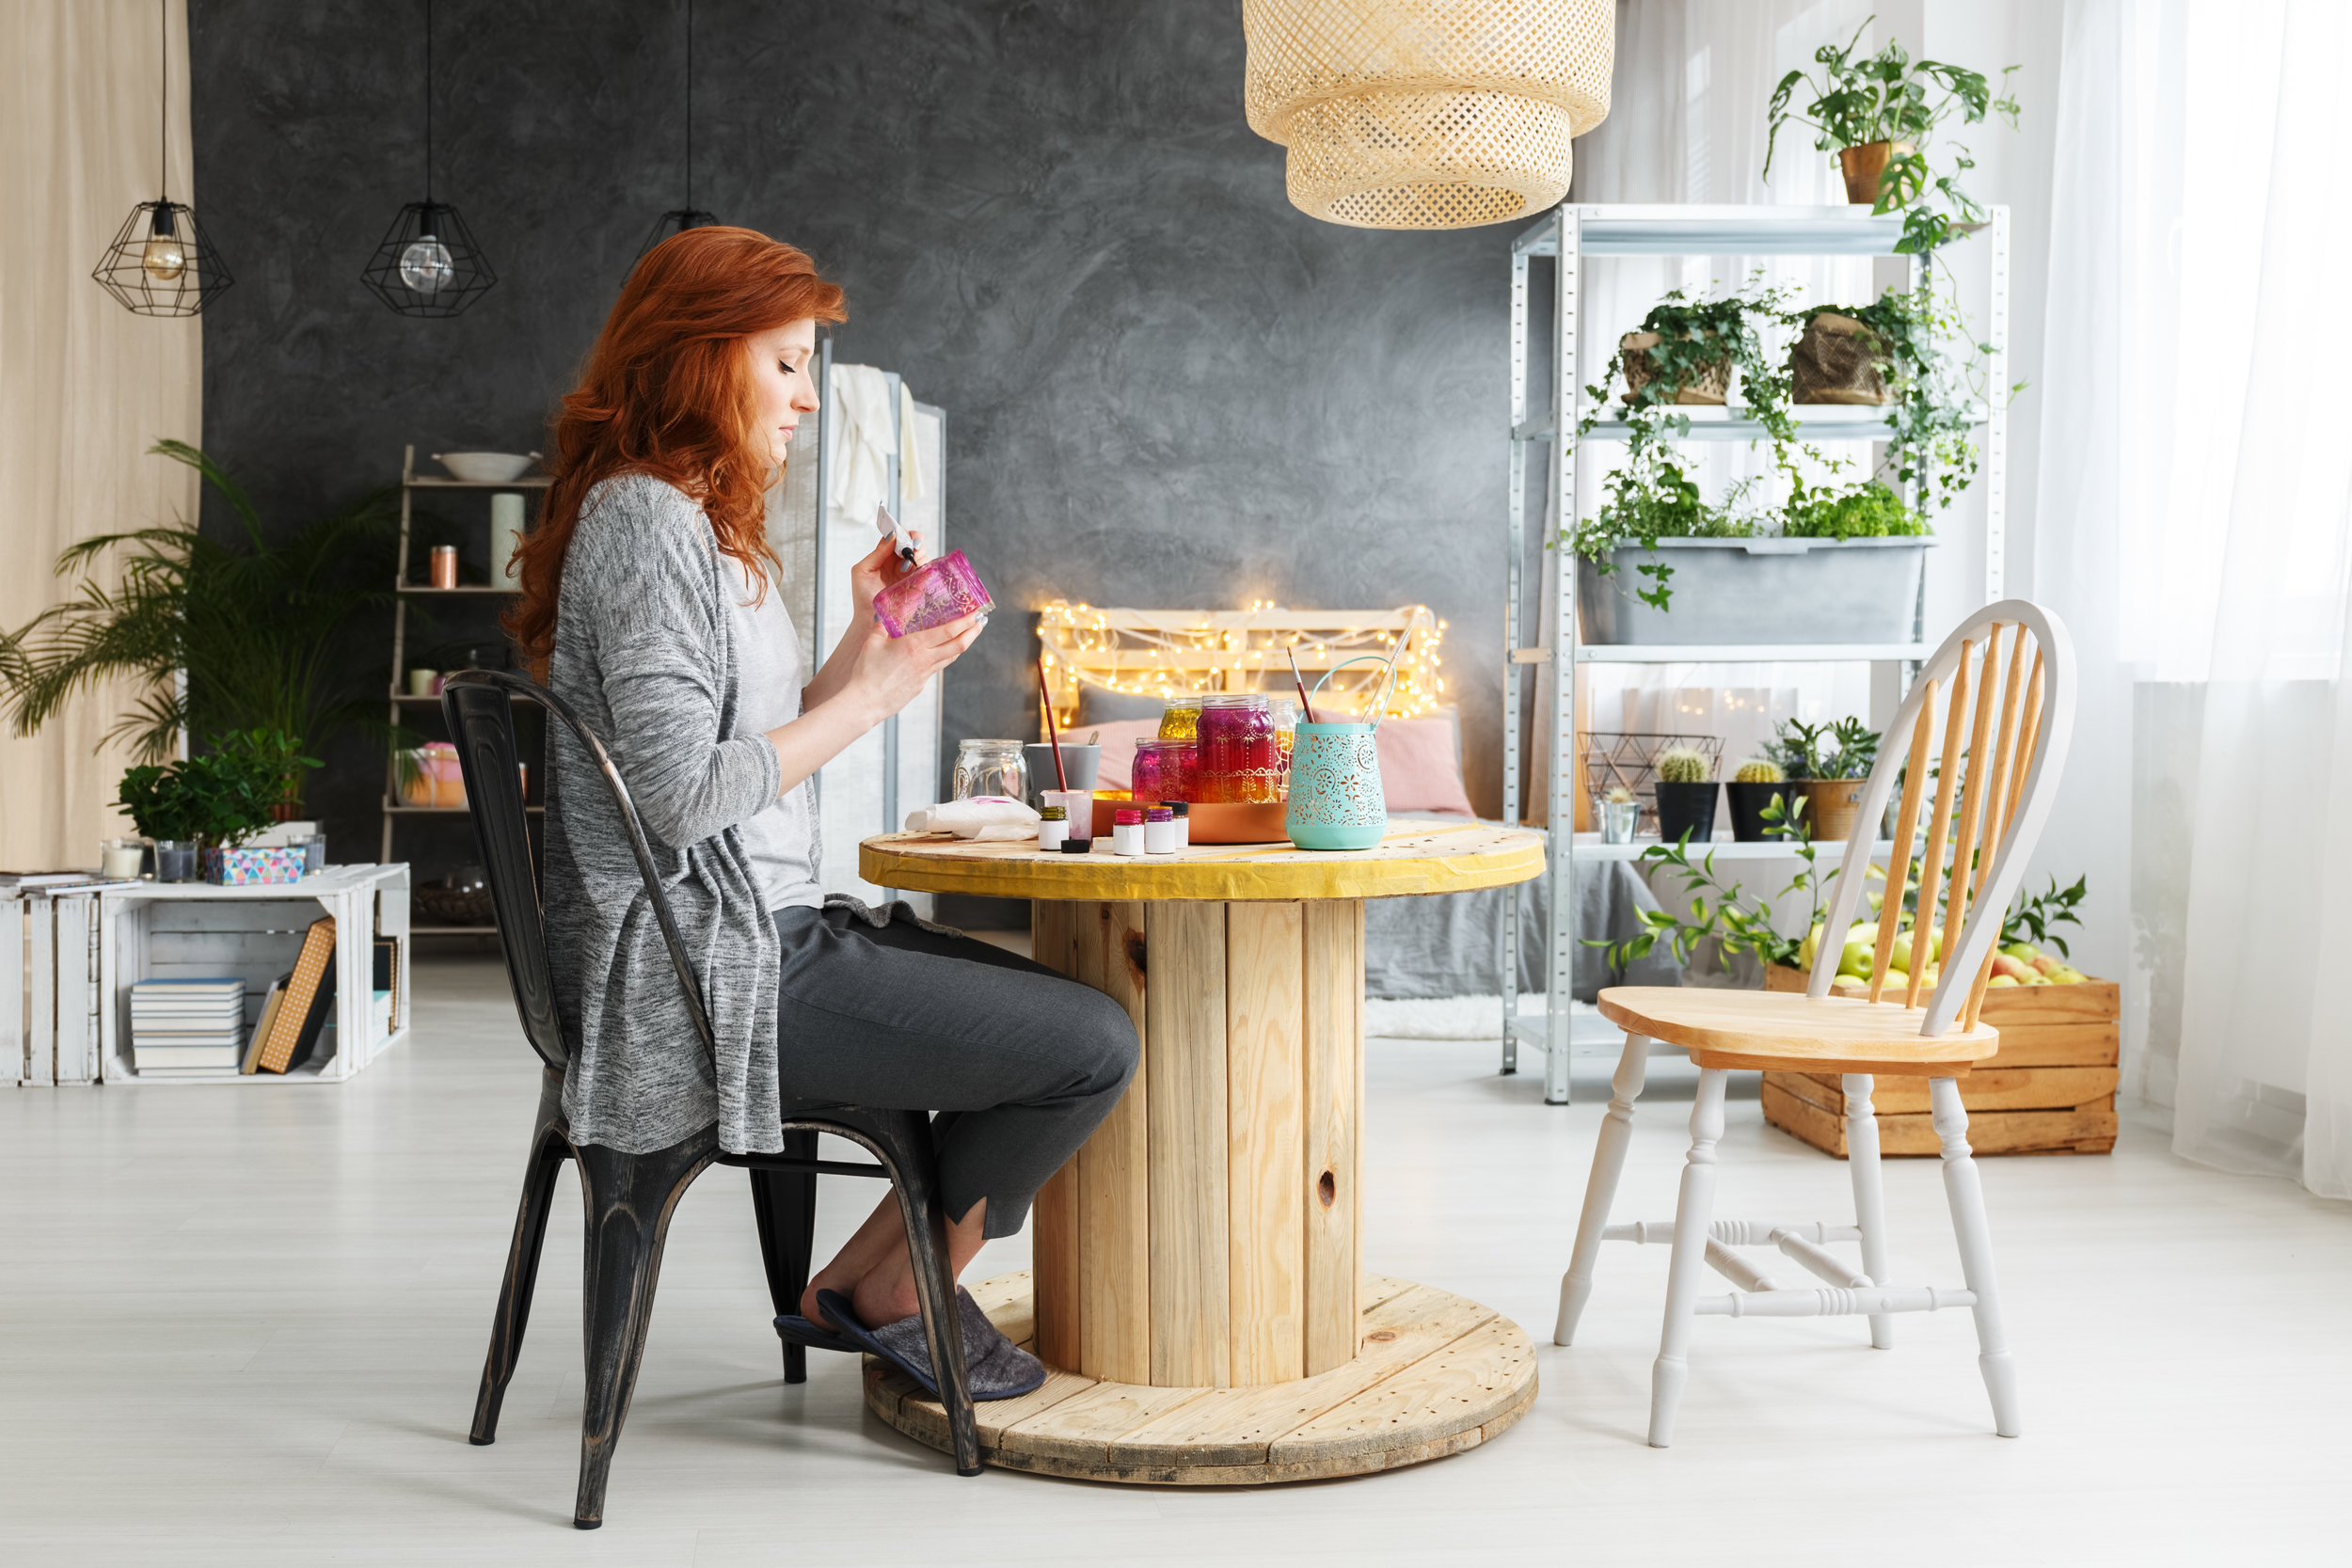 woman-making-craft-in-apartment-P48PCNT.jpg